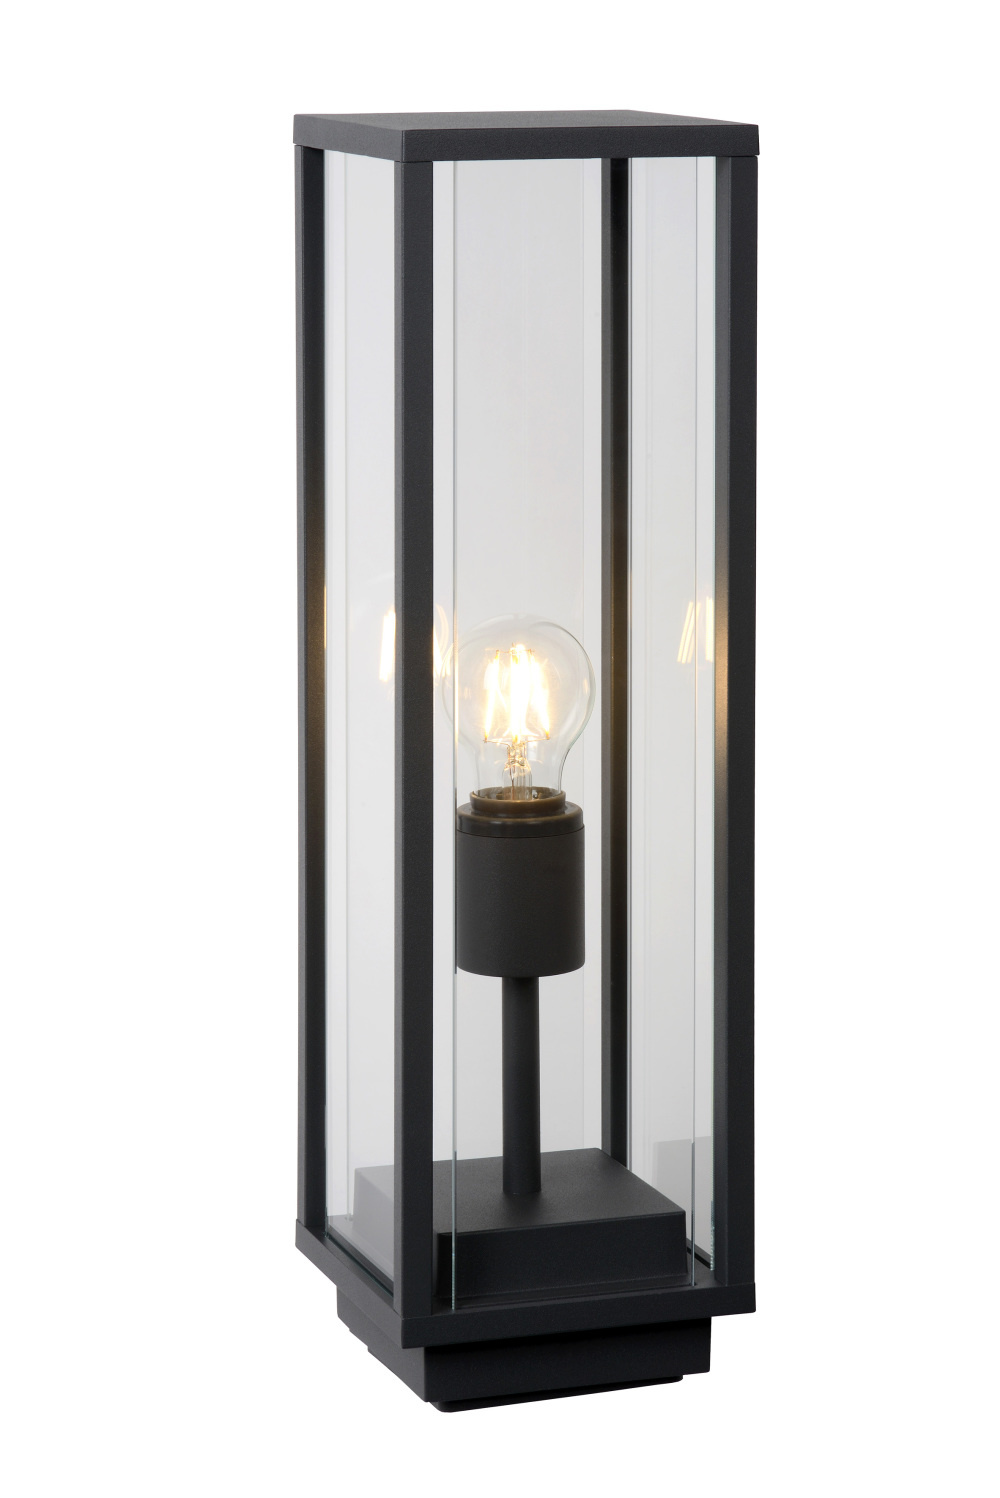 Lucide CLAIRE-LED Sokkel IP54 1xE27W Max15W L14 W14 H50cm